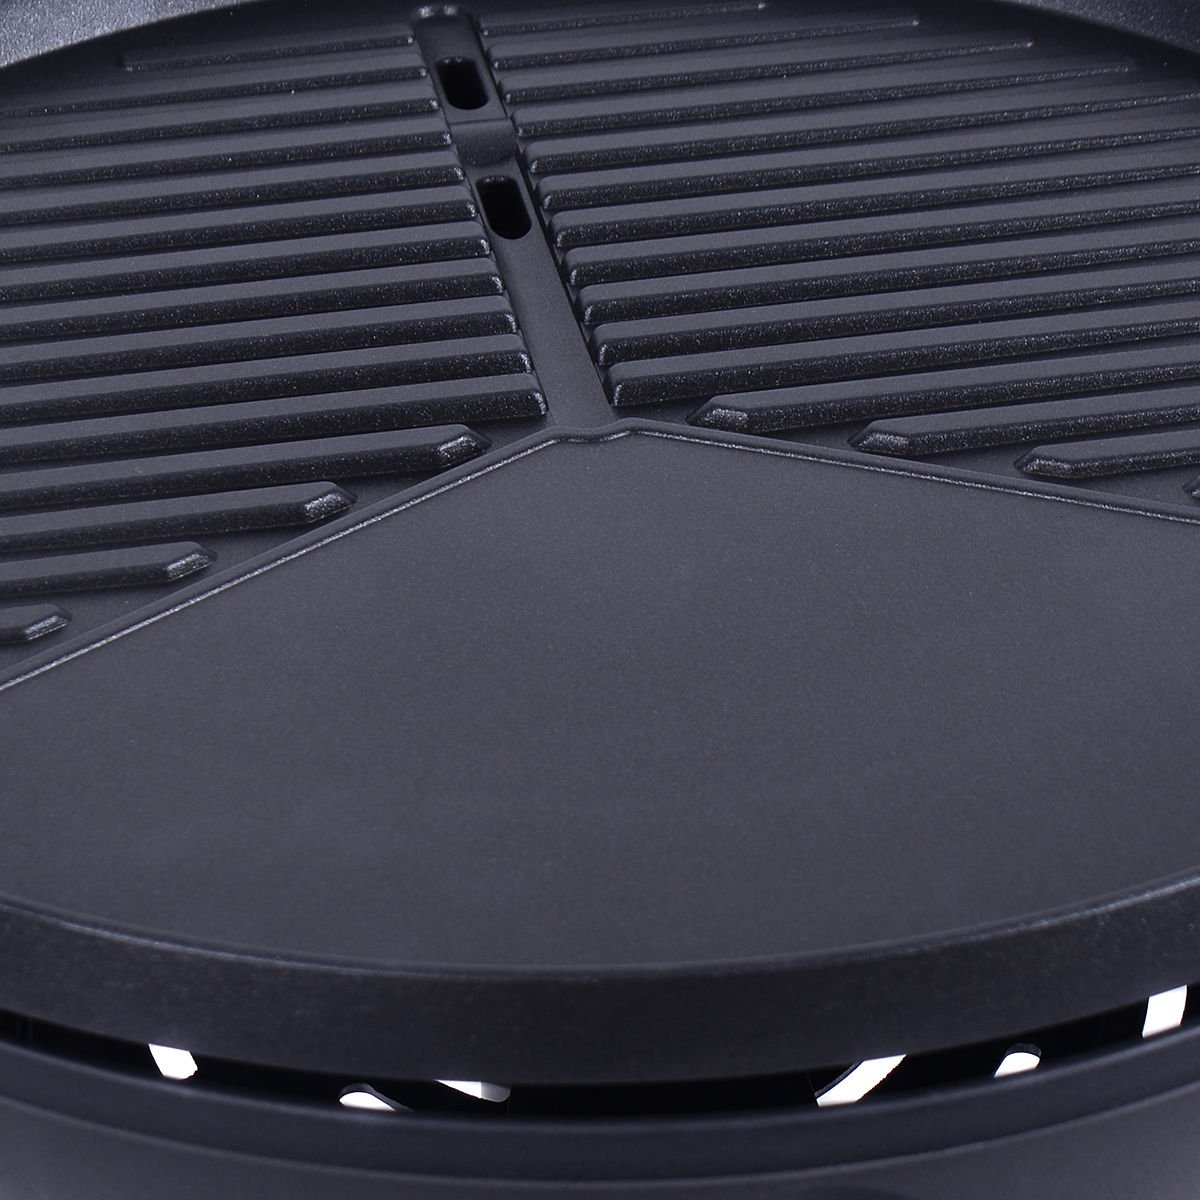 New Electric BBQ Grill 1350W Non-stick 4 Temperature Setting Outdoor Garden Camping by totoshop (Image #6)